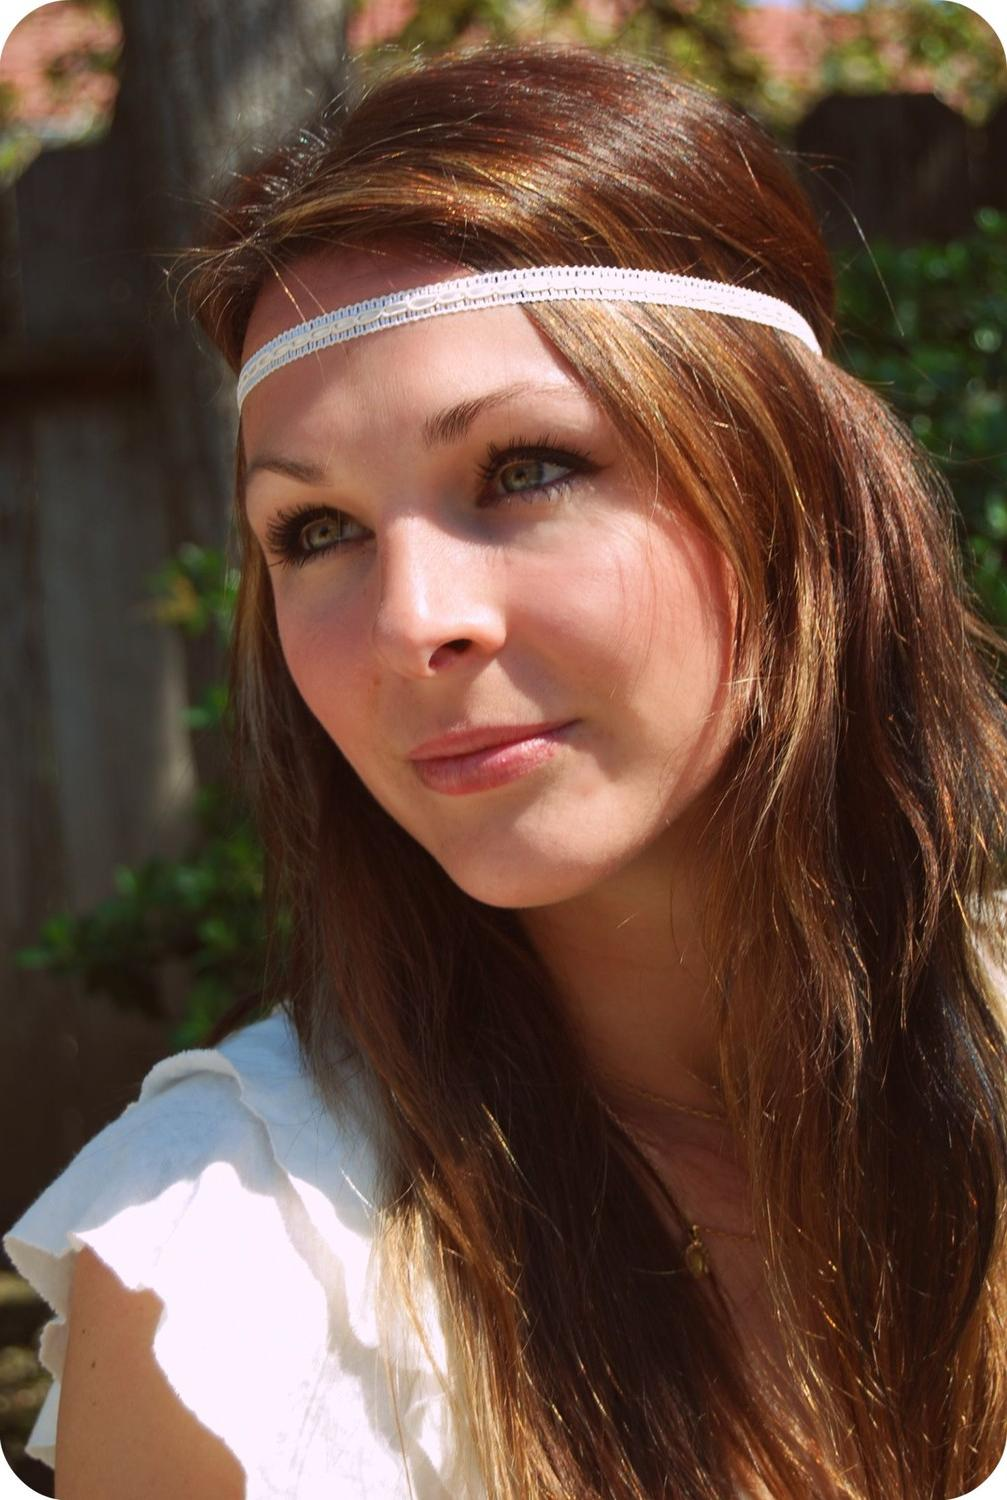 Plain Jane White Hippie Headband. From peacelovevintageshop